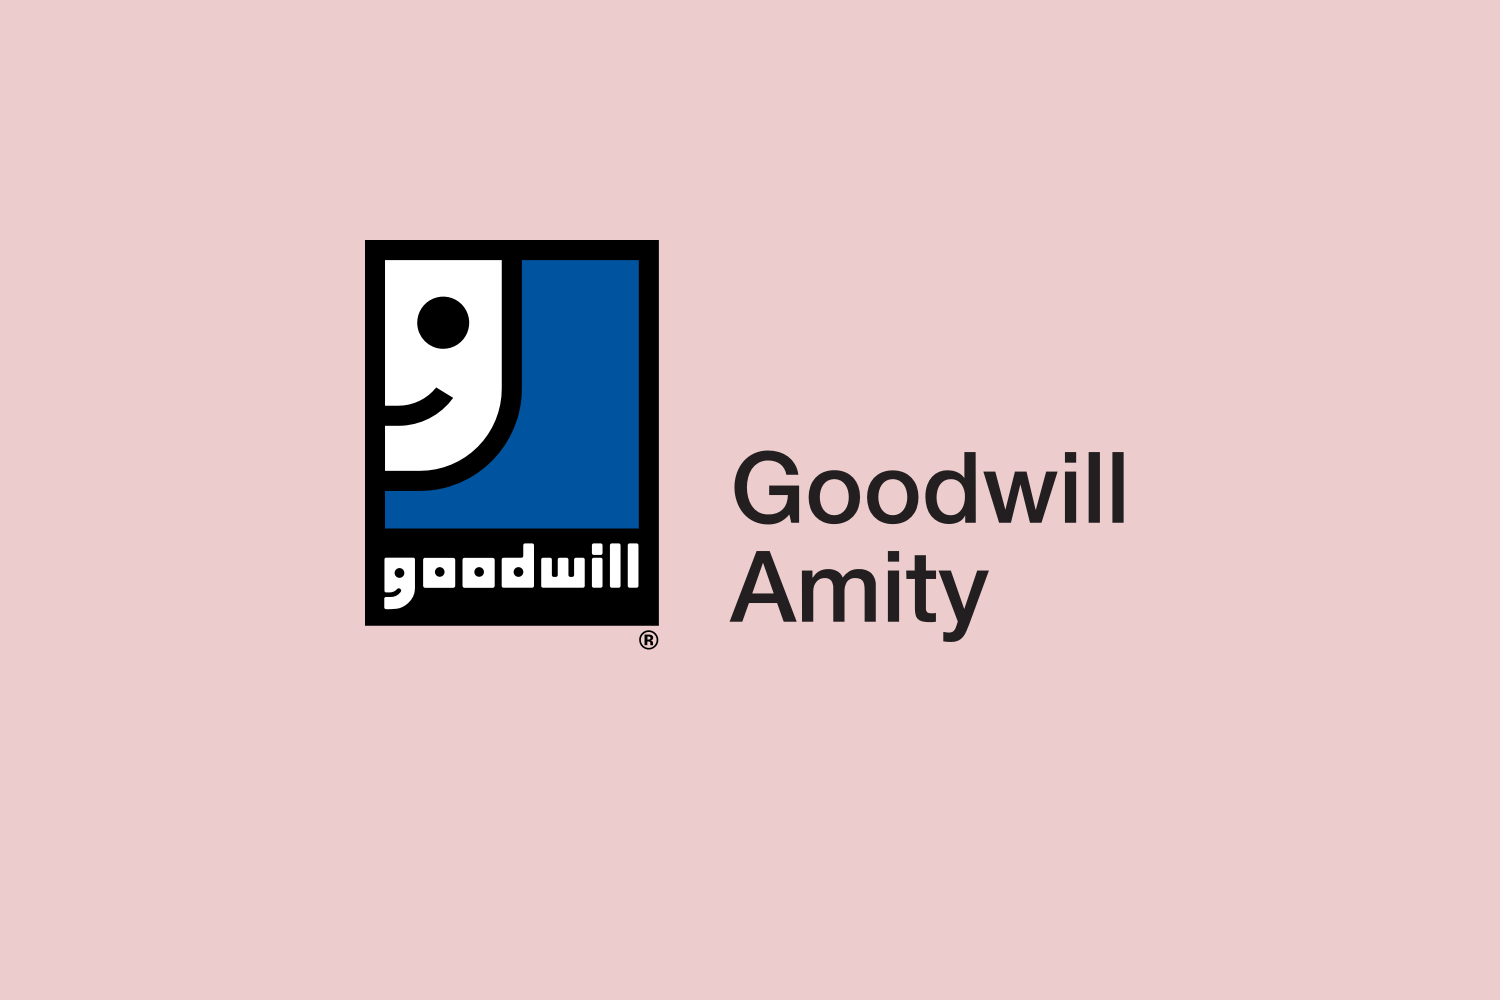 Goodwill Amity logo on red background